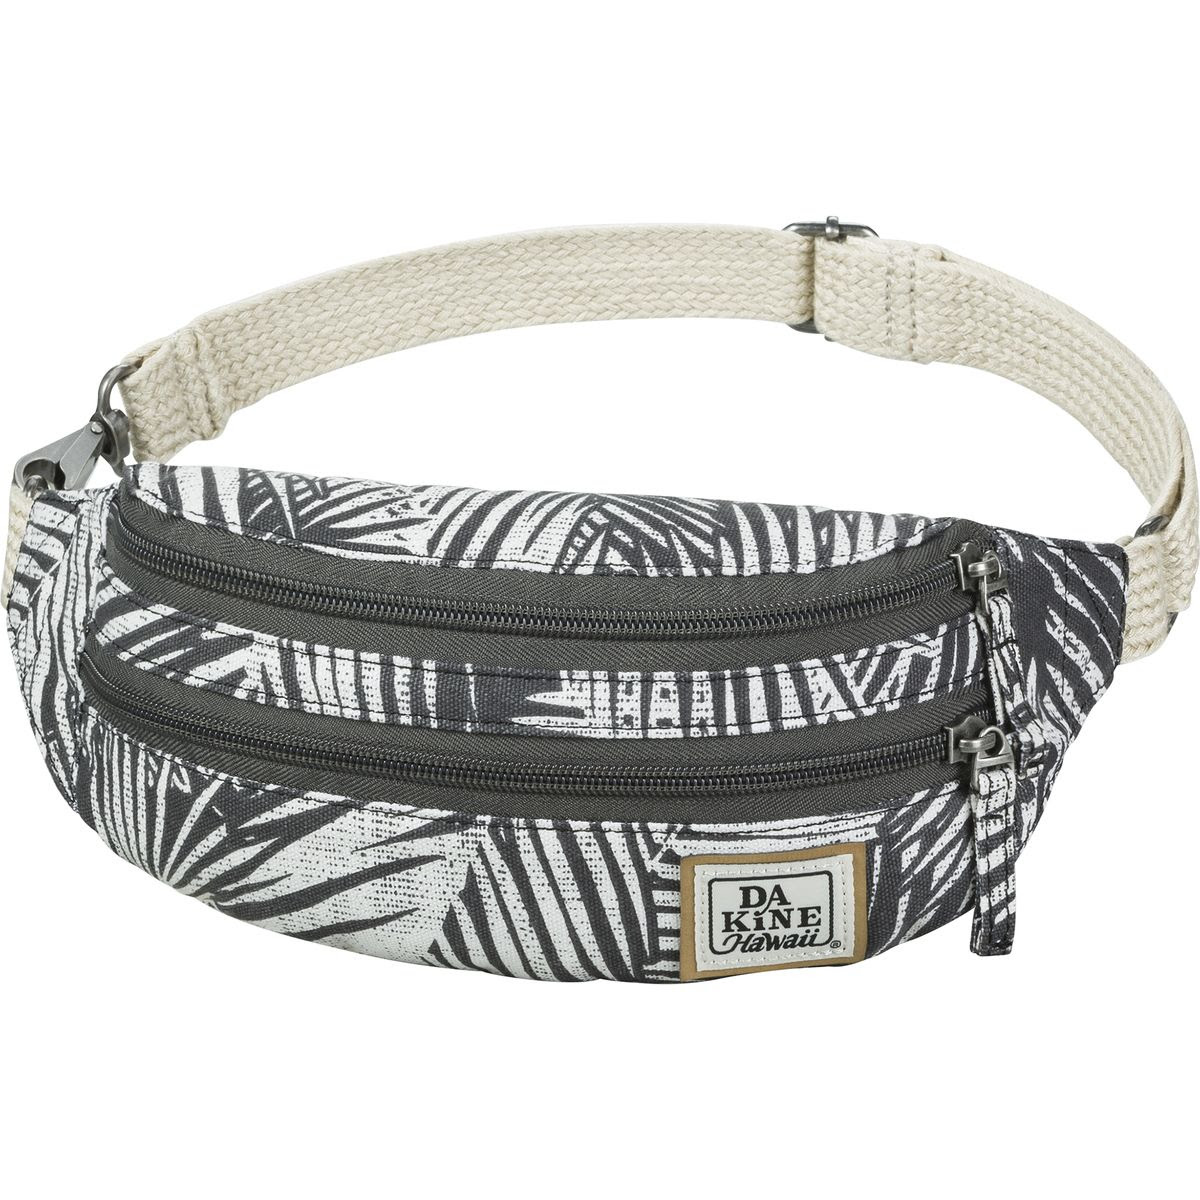 DAKINE Gigi Hip Pack - Women's Kona, One Size